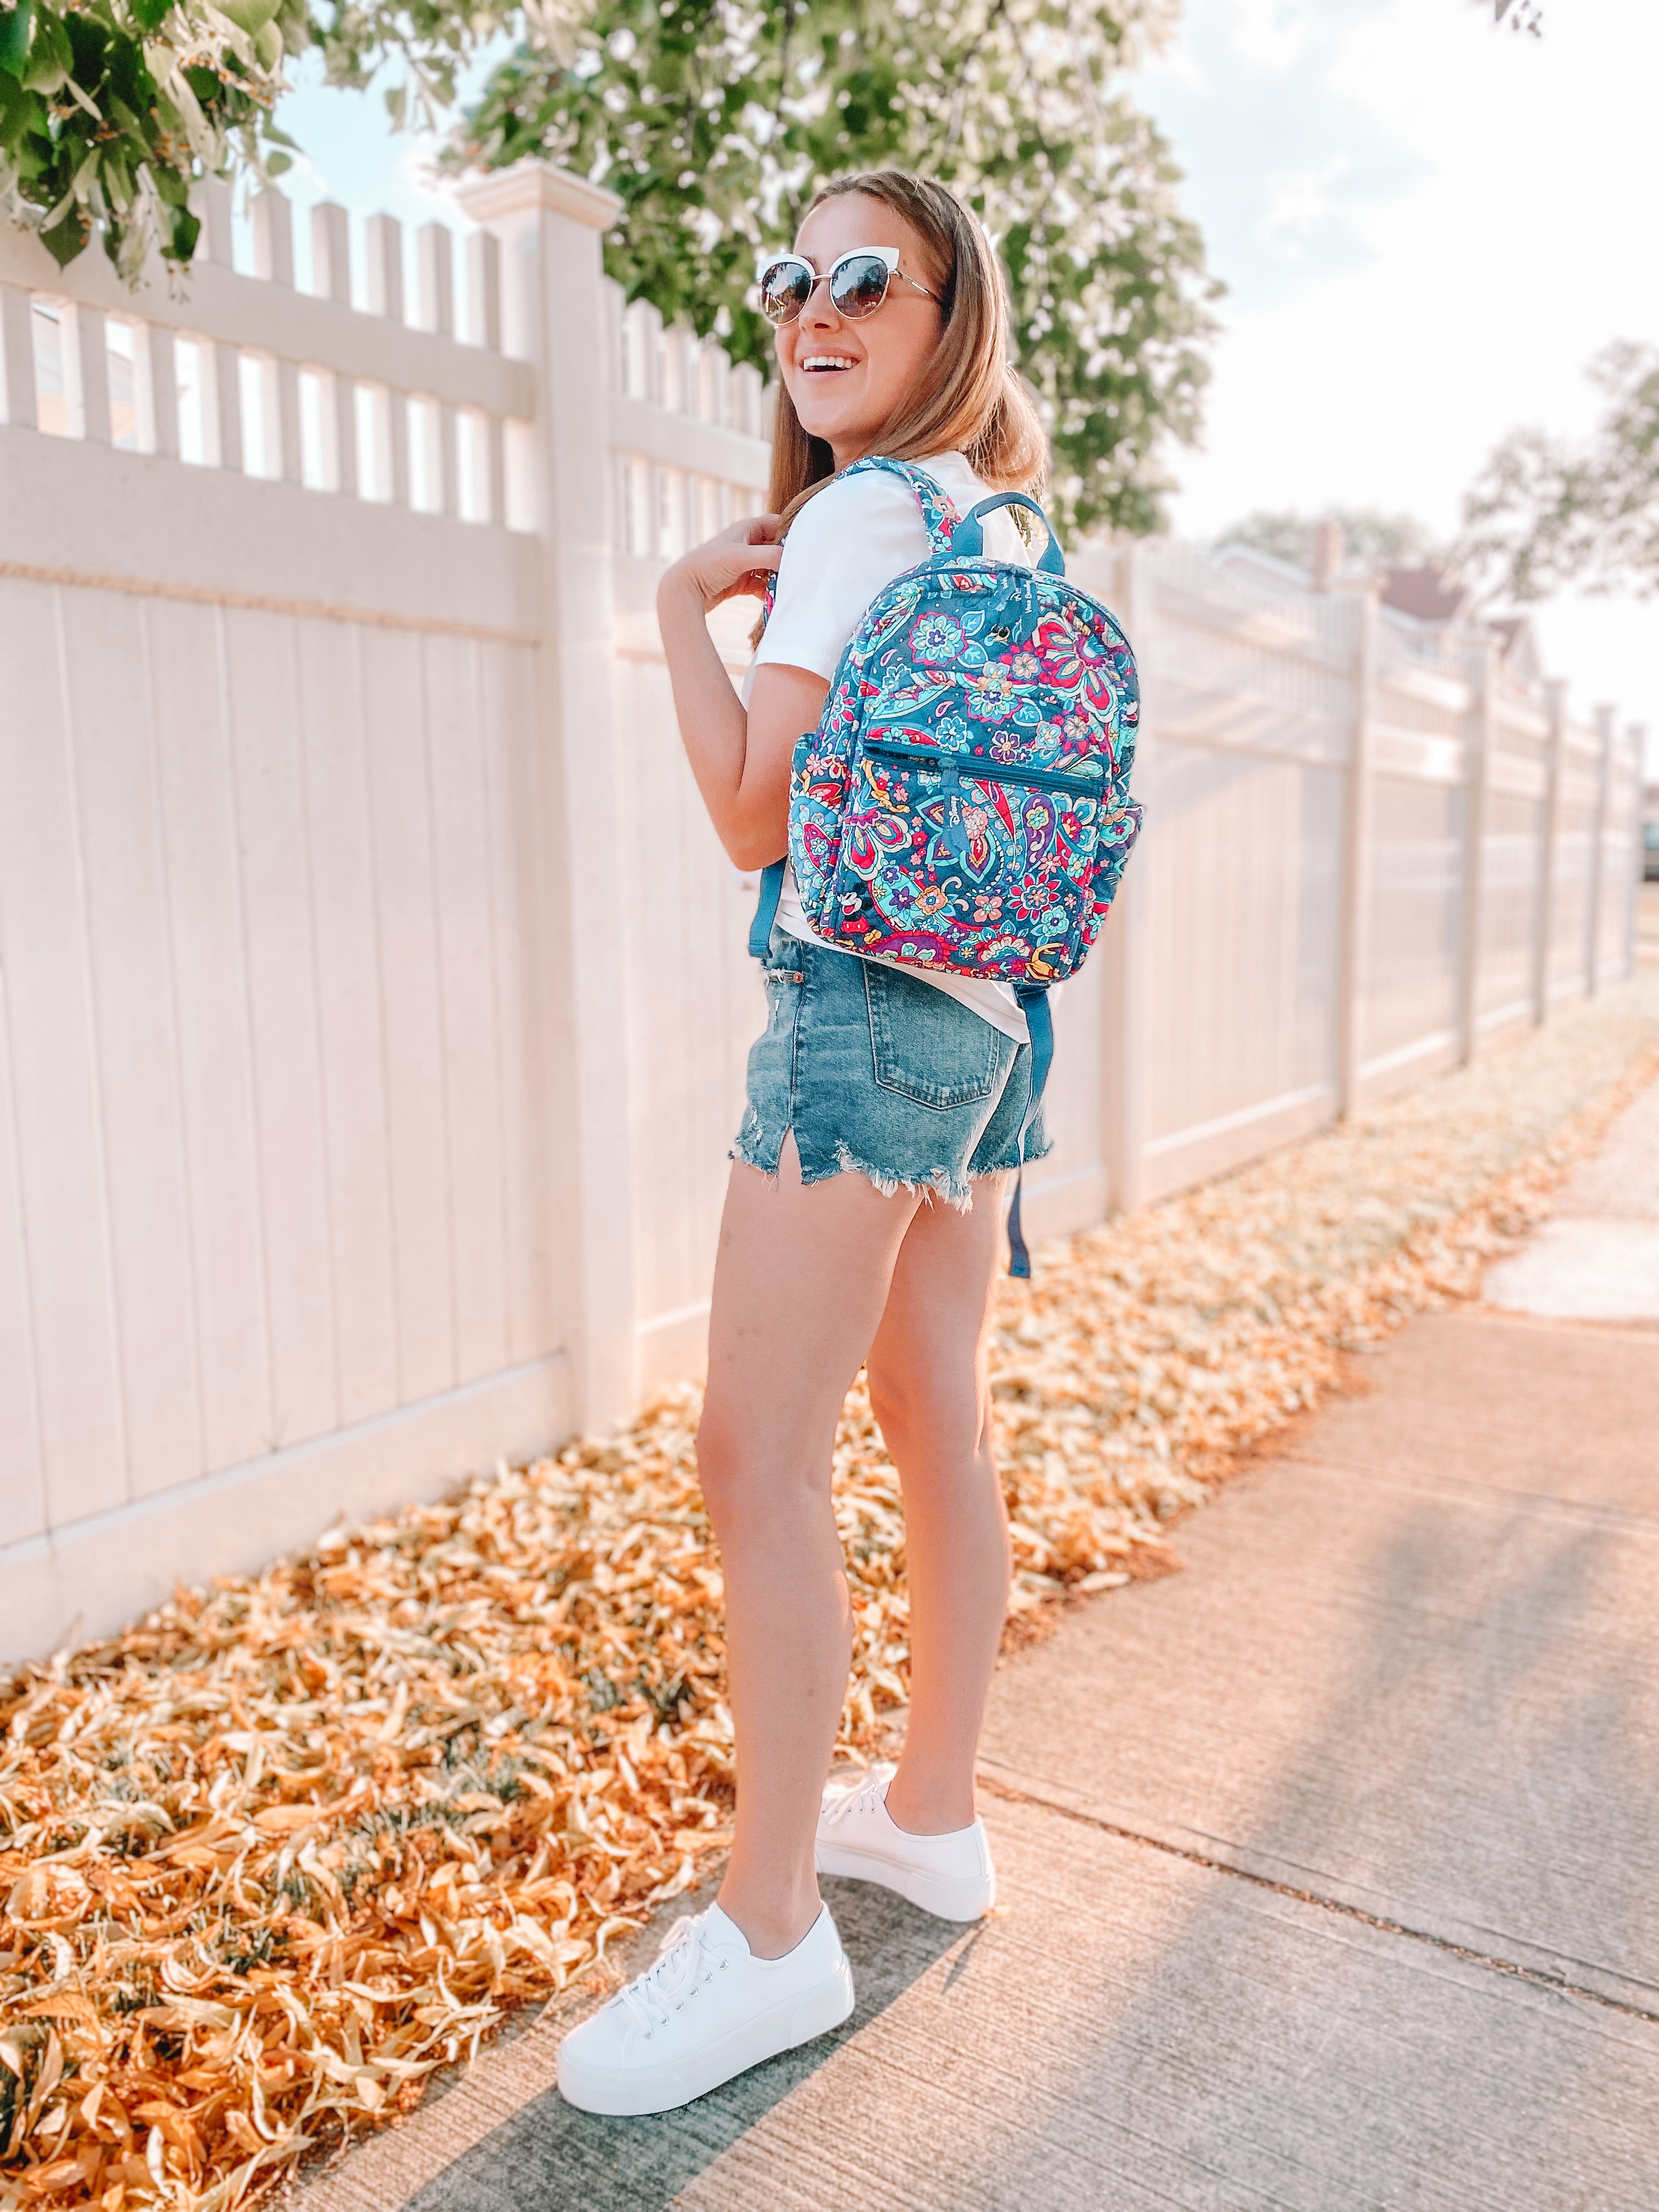 young woman smiles in summer sinshine while holding a vera bradley disney backpack. she has on white platform smeakers, denim shorts, a white tshirt and white sunglasses